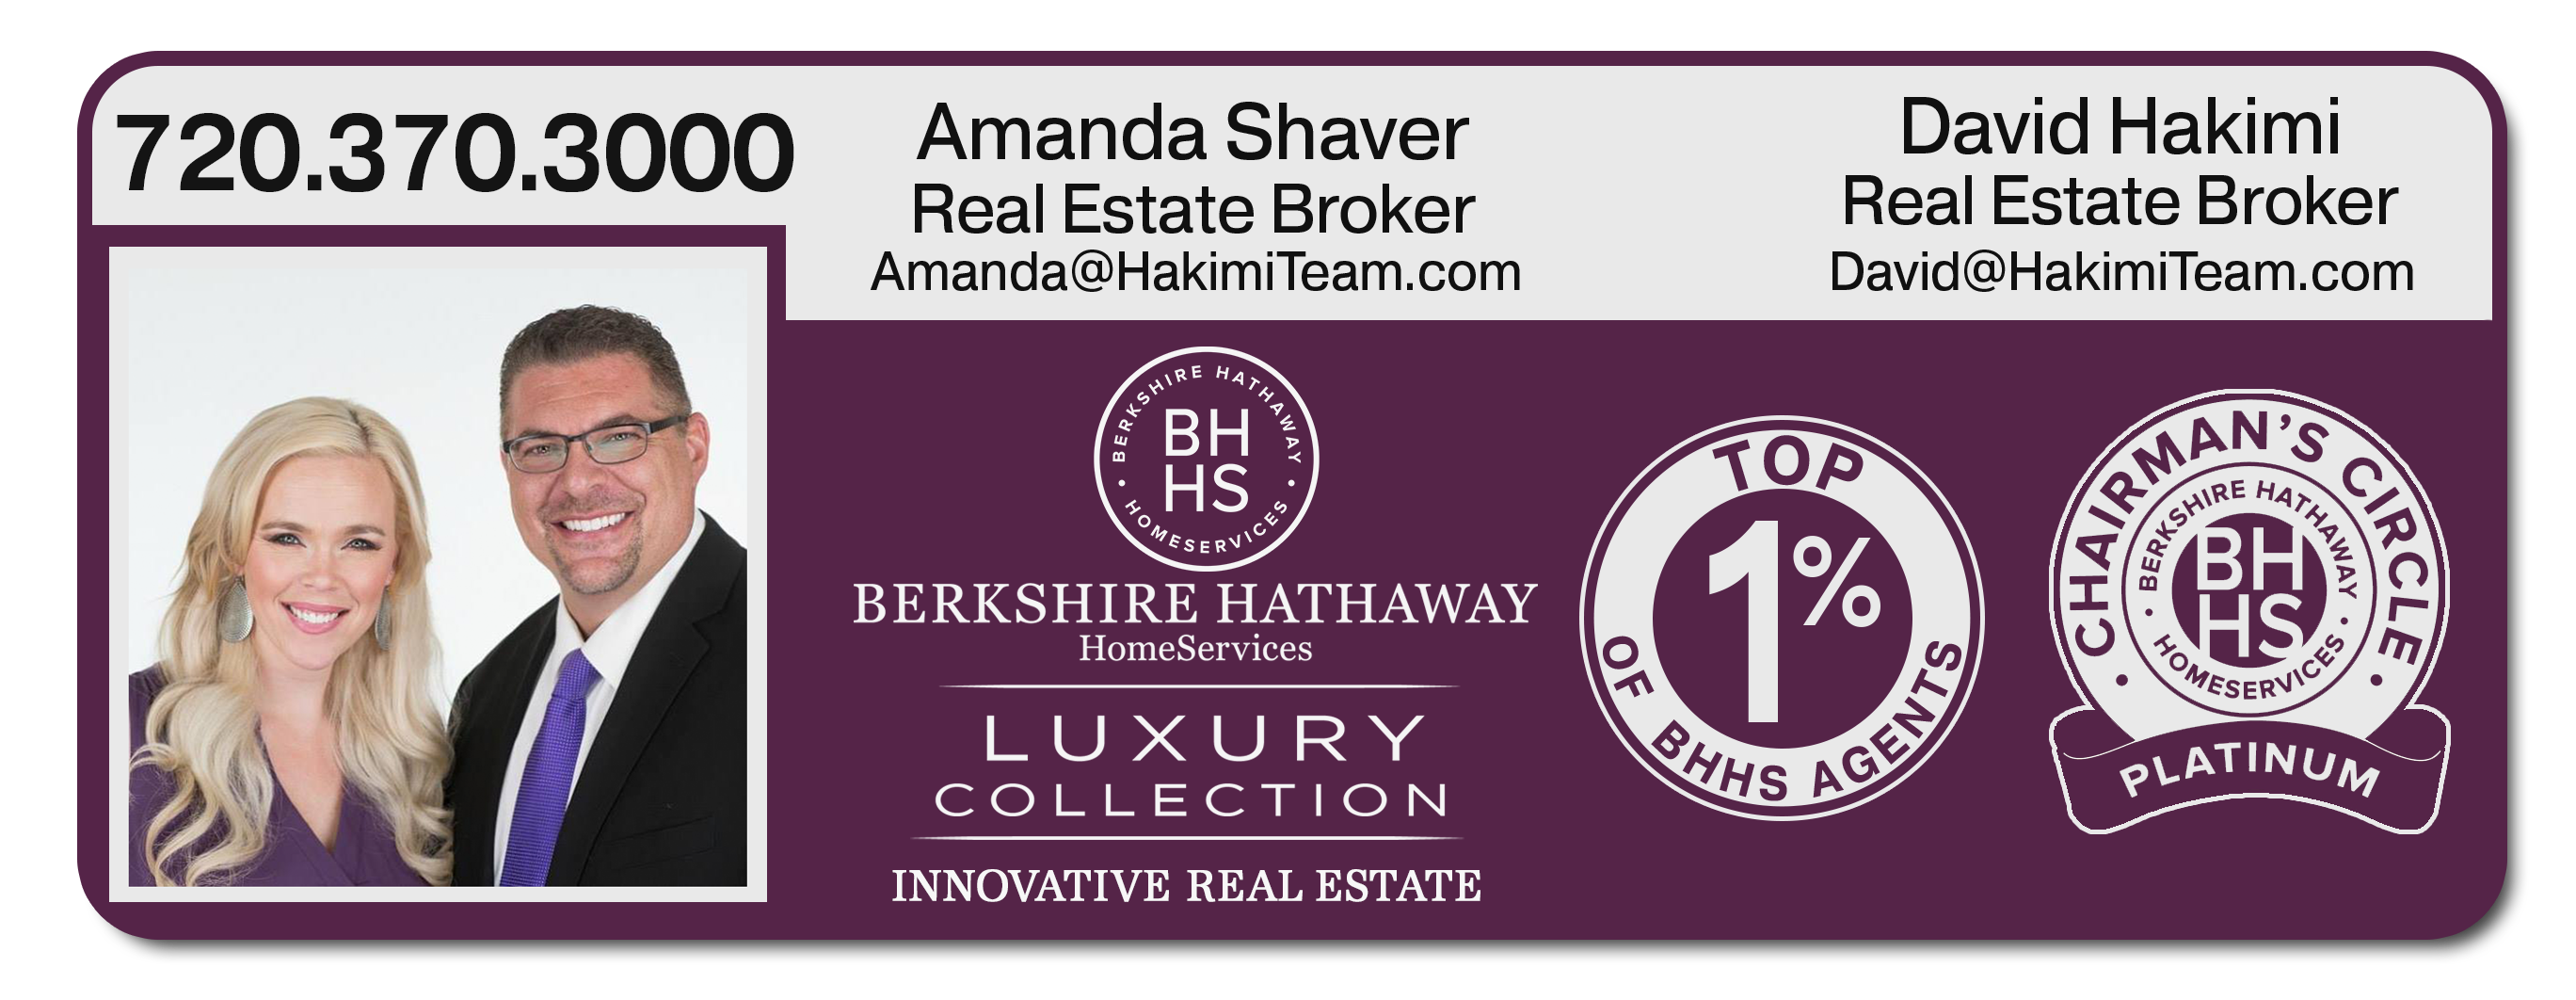 Berkshire Hathaway Luxury Collection Denver-The Hakimi Team